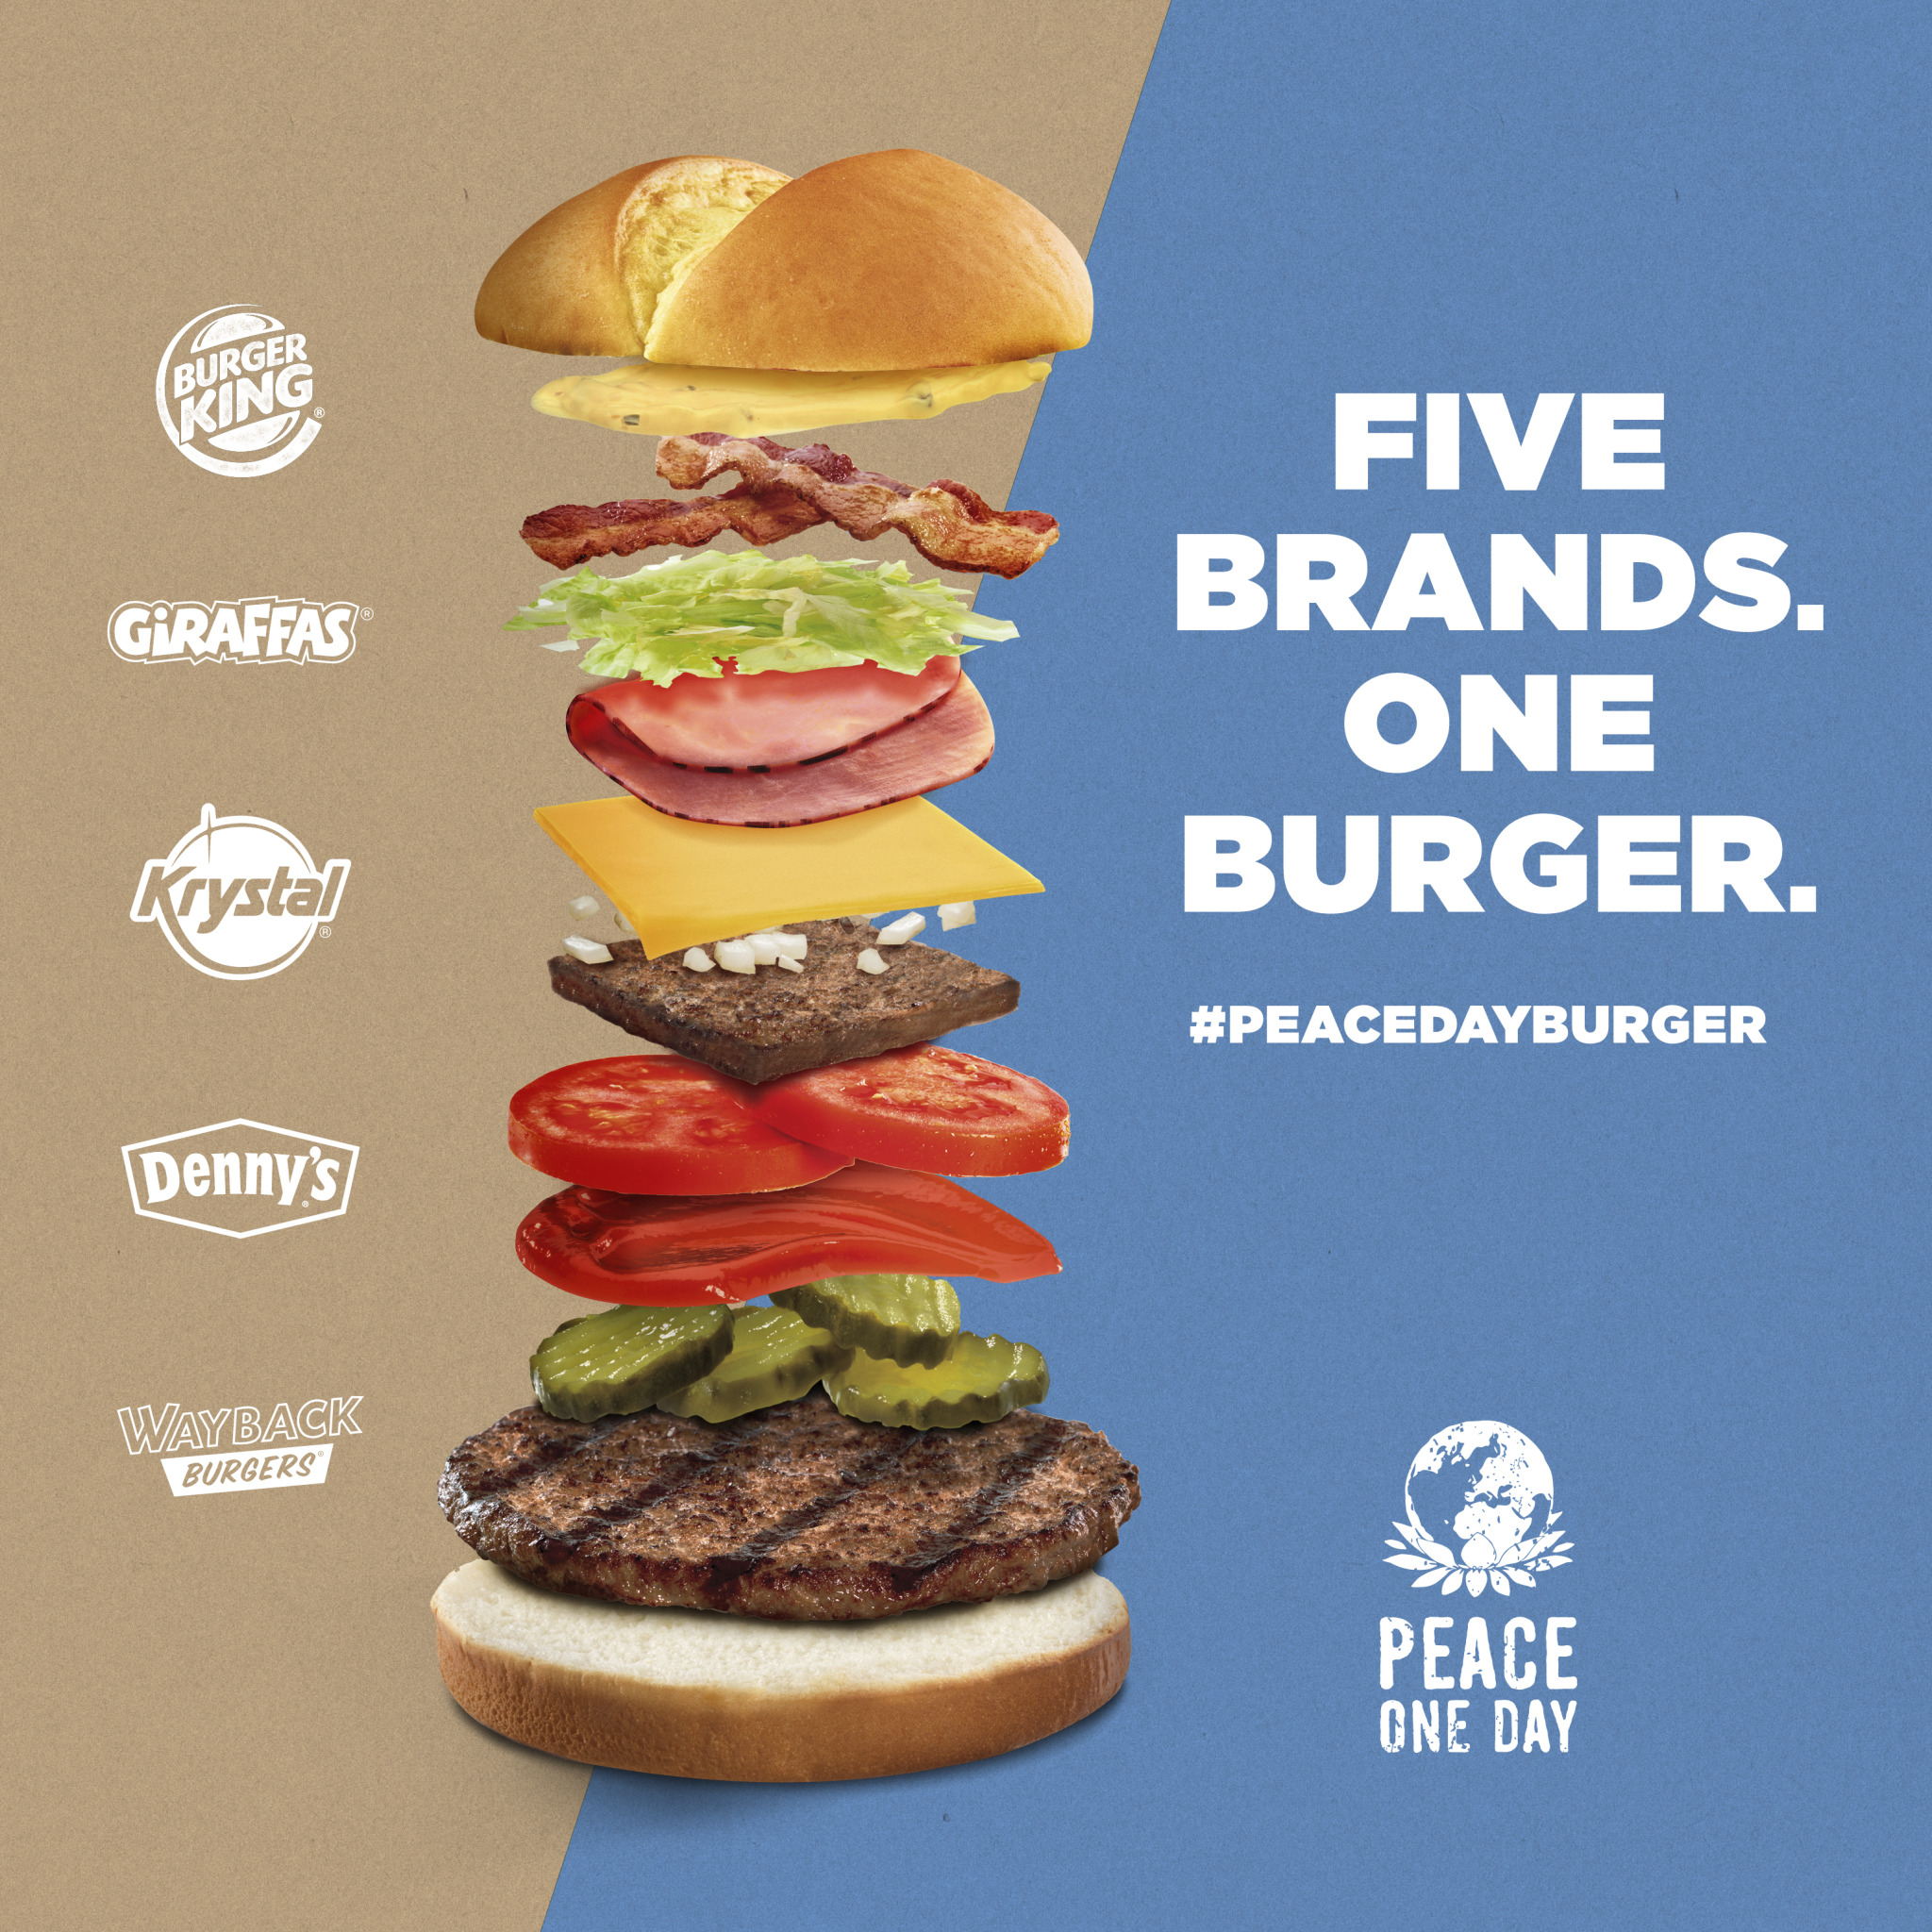 Burger King Teams With Denny's, Krystal & Others To Create Peace Day Hybrid Burger